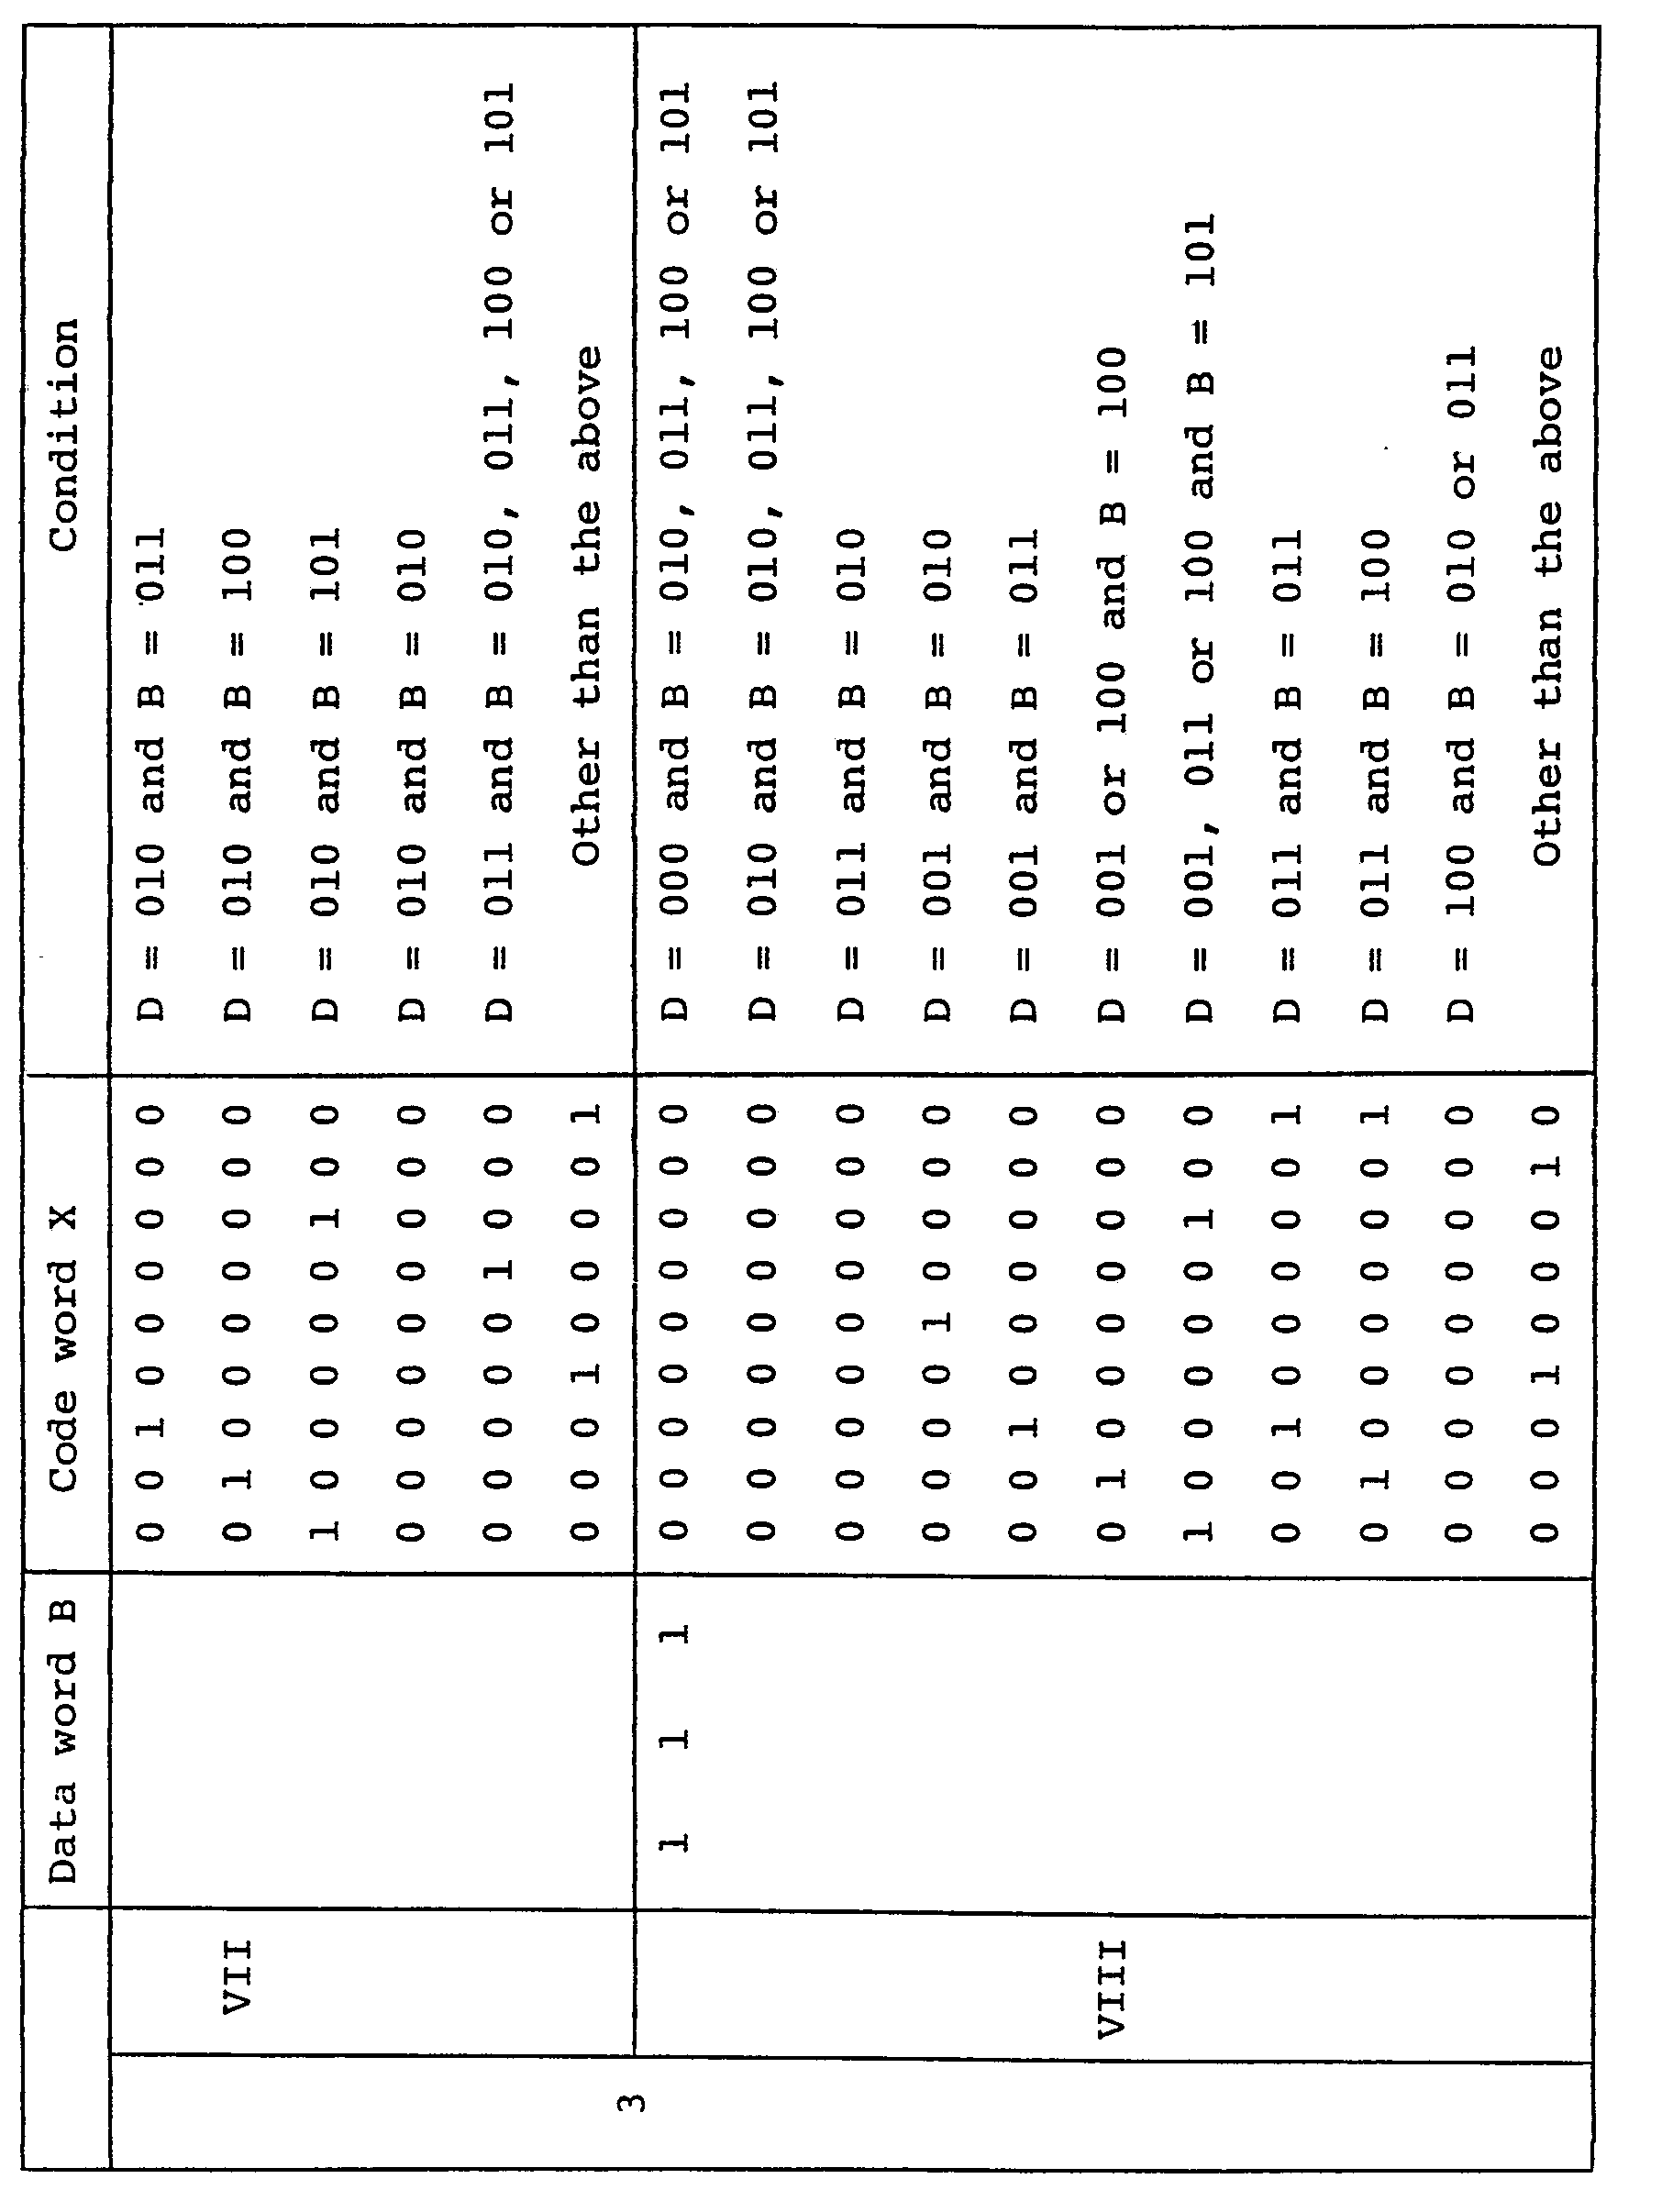 Ep0122083b1 Method And Apparatus For Encoding A Binary Data Stream D010 Led Driver Wiring Diagram Figure Imgb0058